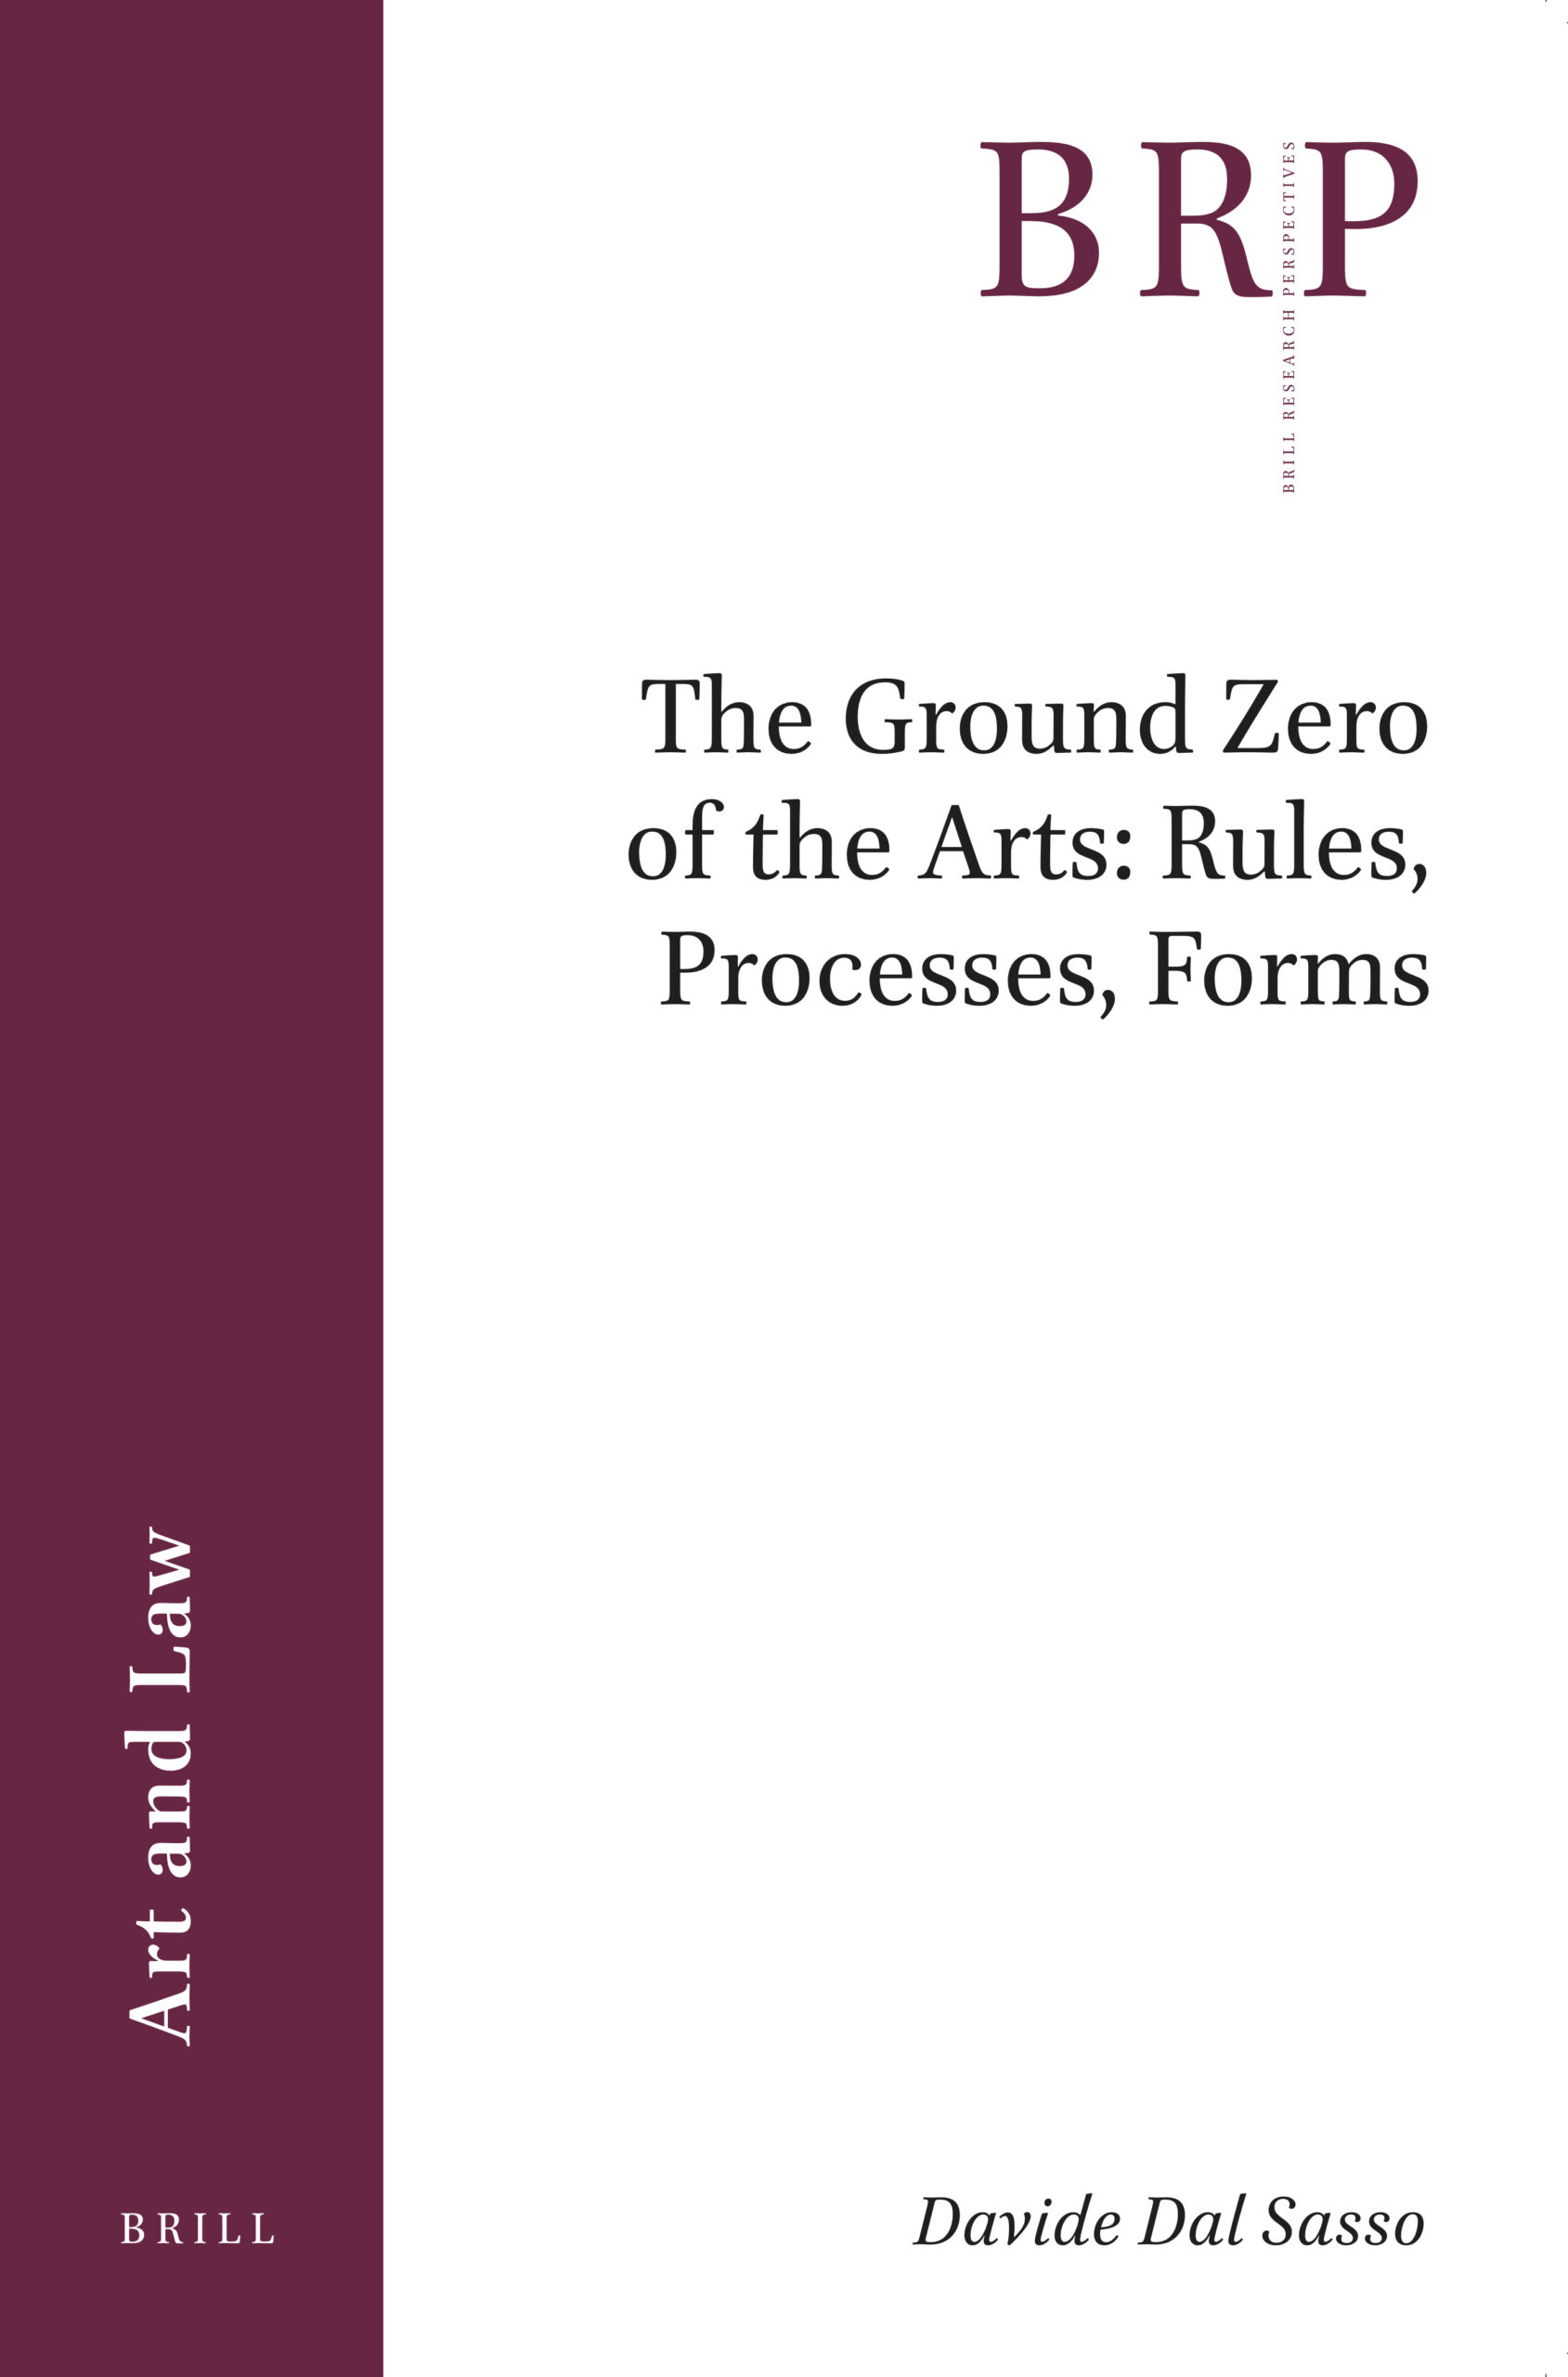 The Ground Zero of the Arts: Rules, Processes, Forms cover